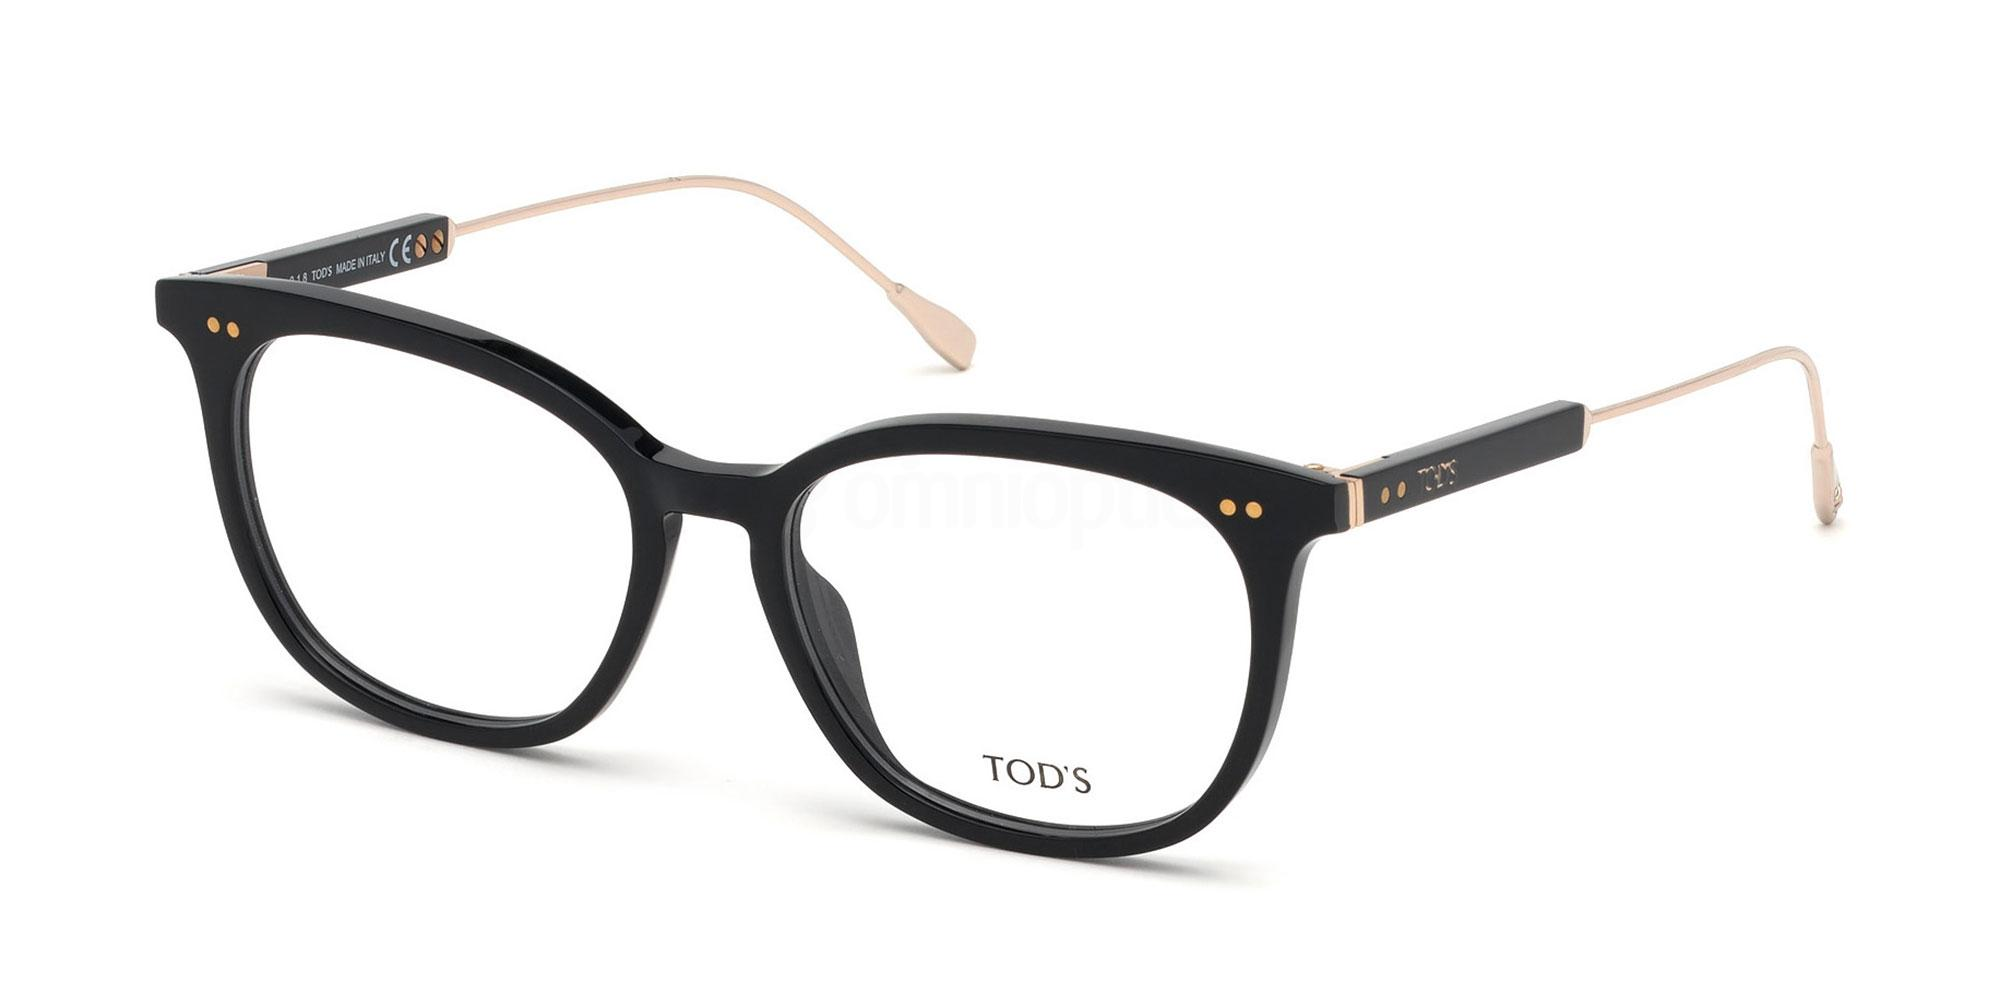 001 TO5202 Glasses, TODS